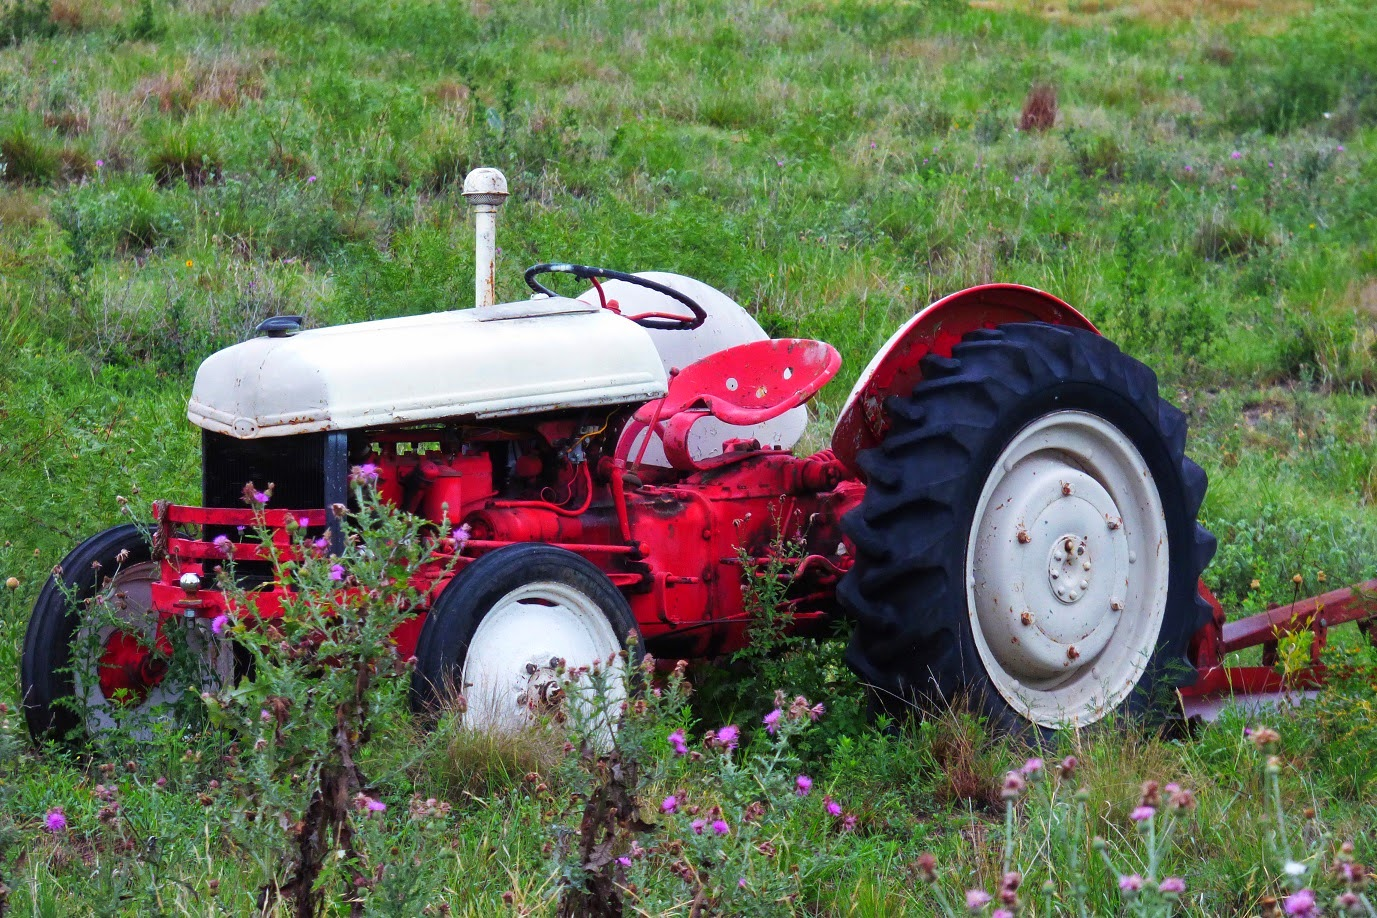 the retired tractor